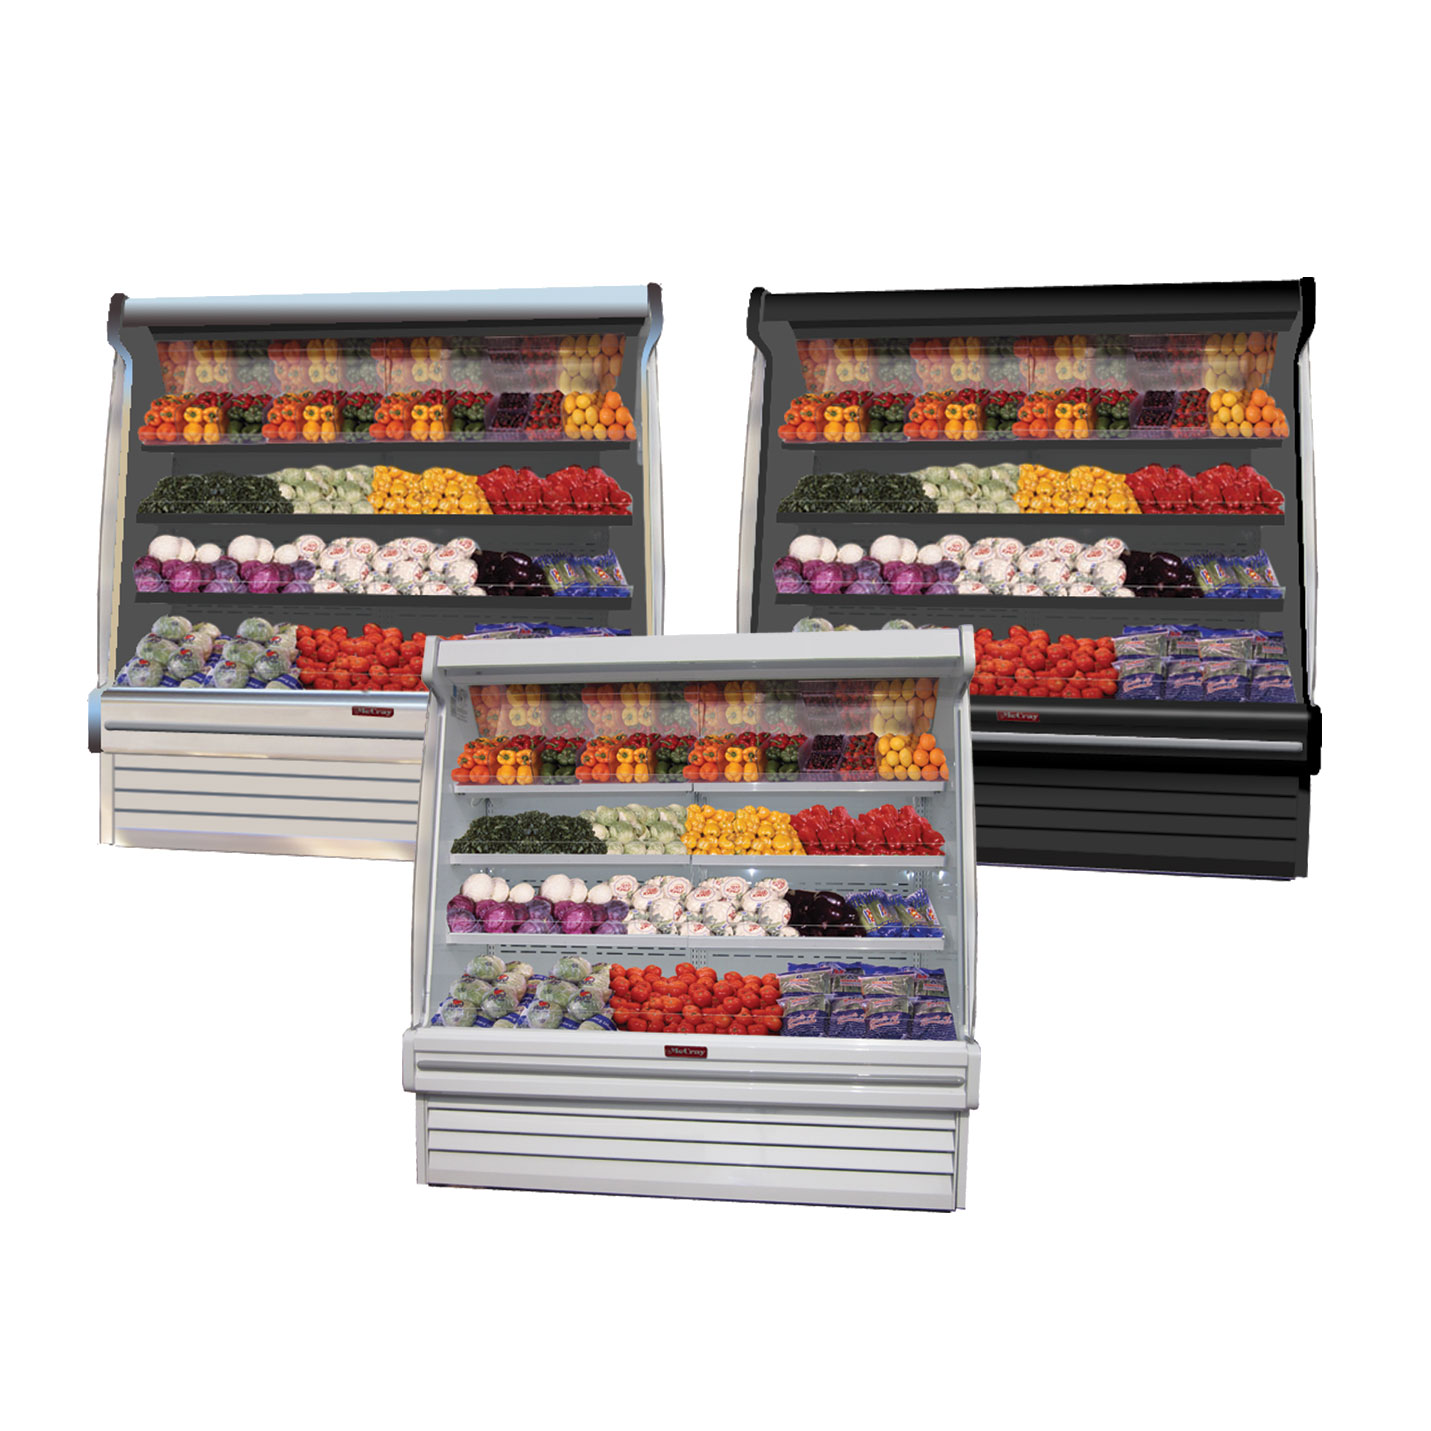 Howard-McCray SC-OP35E-3S-B-LED display case, produce